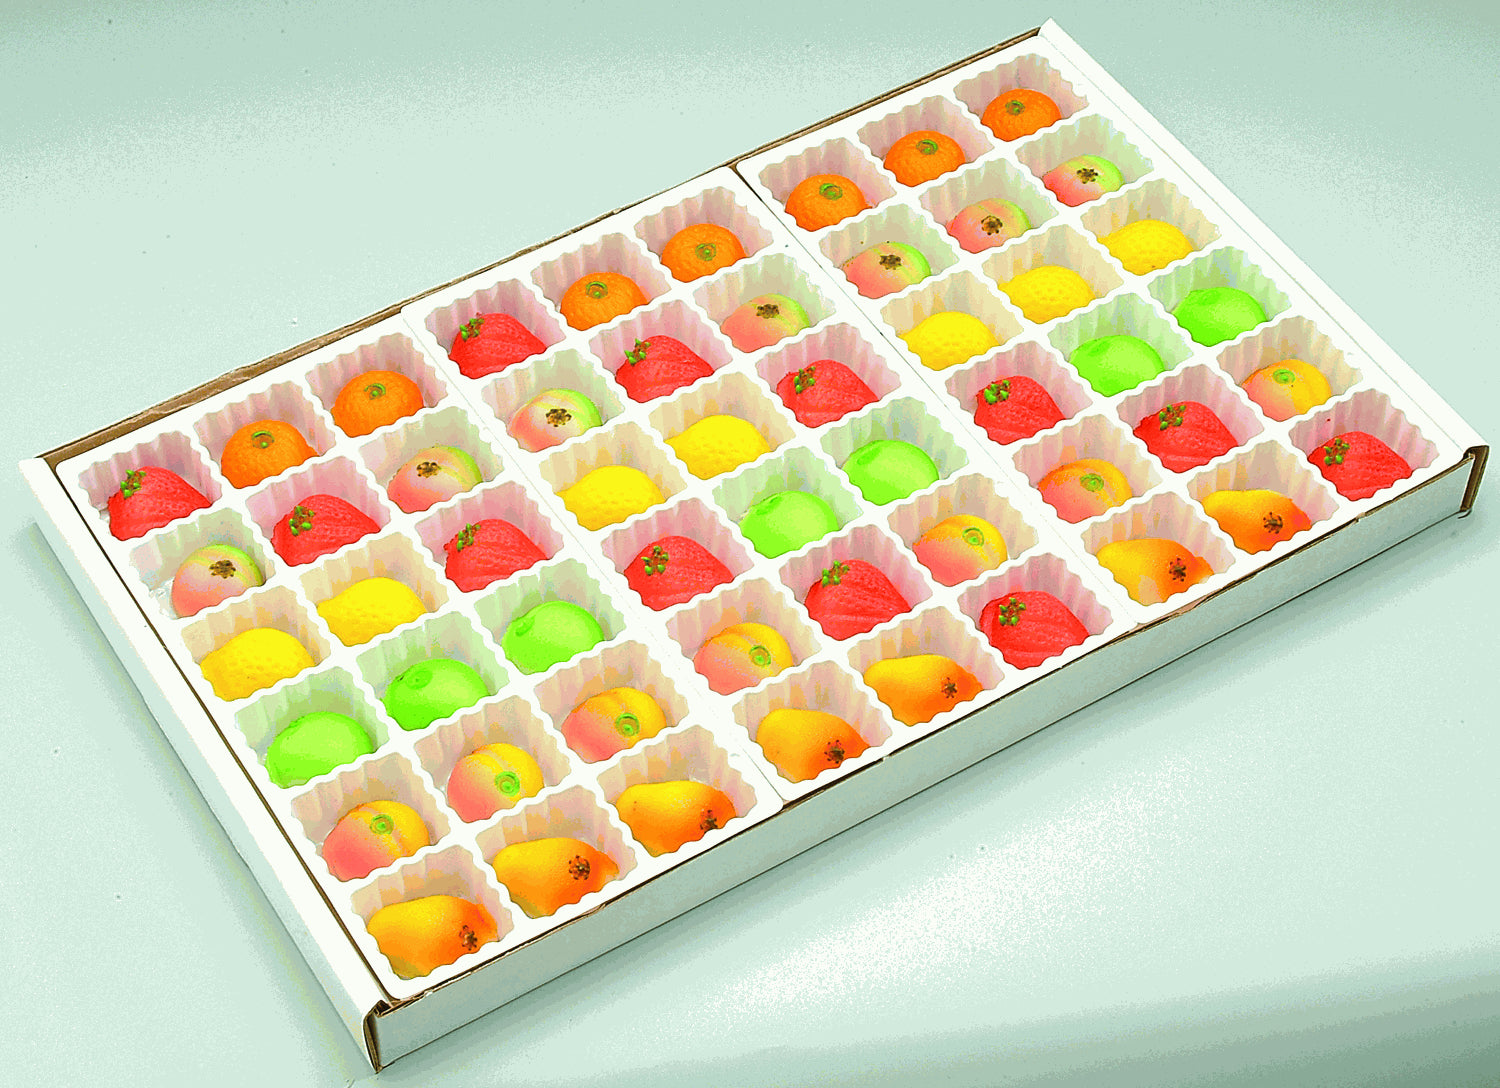 Bergen Marzipan Bulk Tray 54pc-online-candy-store-50151